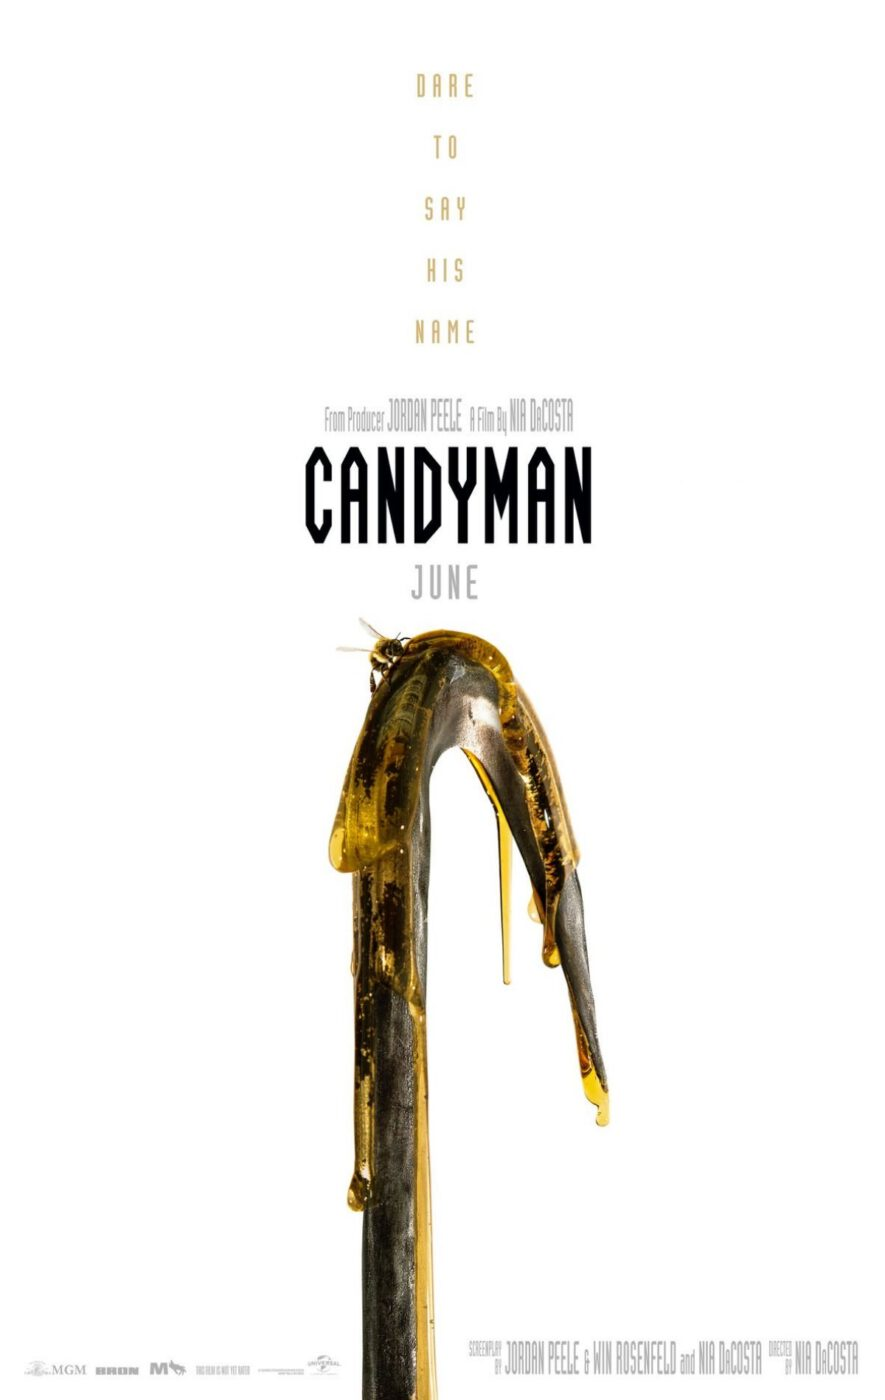 The Candyman 2020 poster featuring a crook covered with honey and a bee